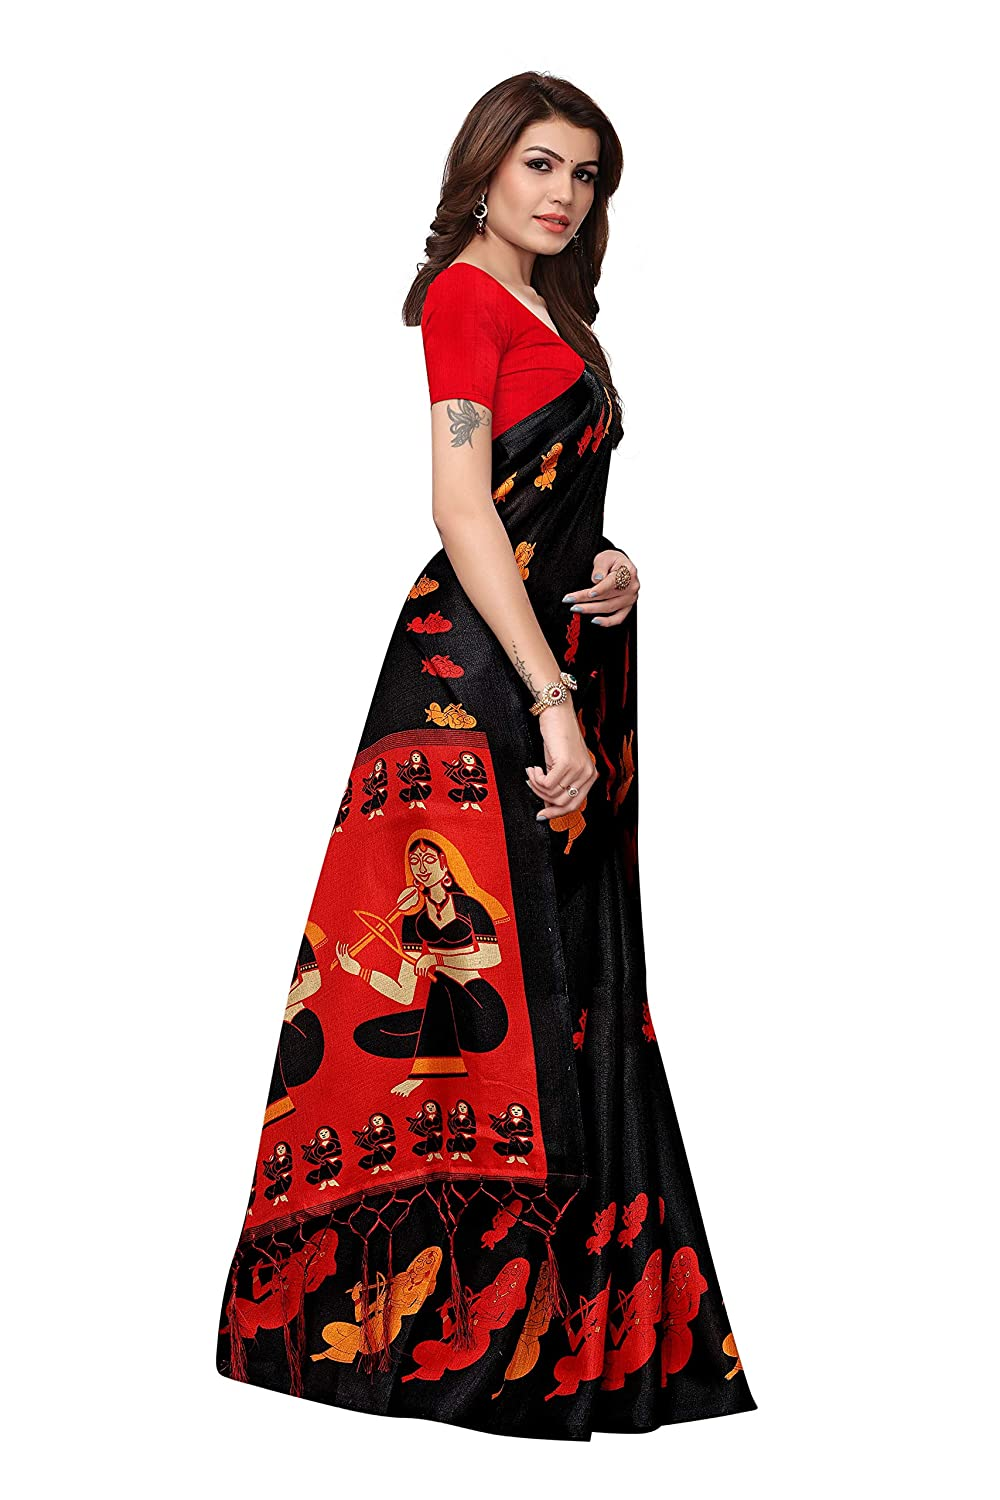 kalamkari Silk saree under 500